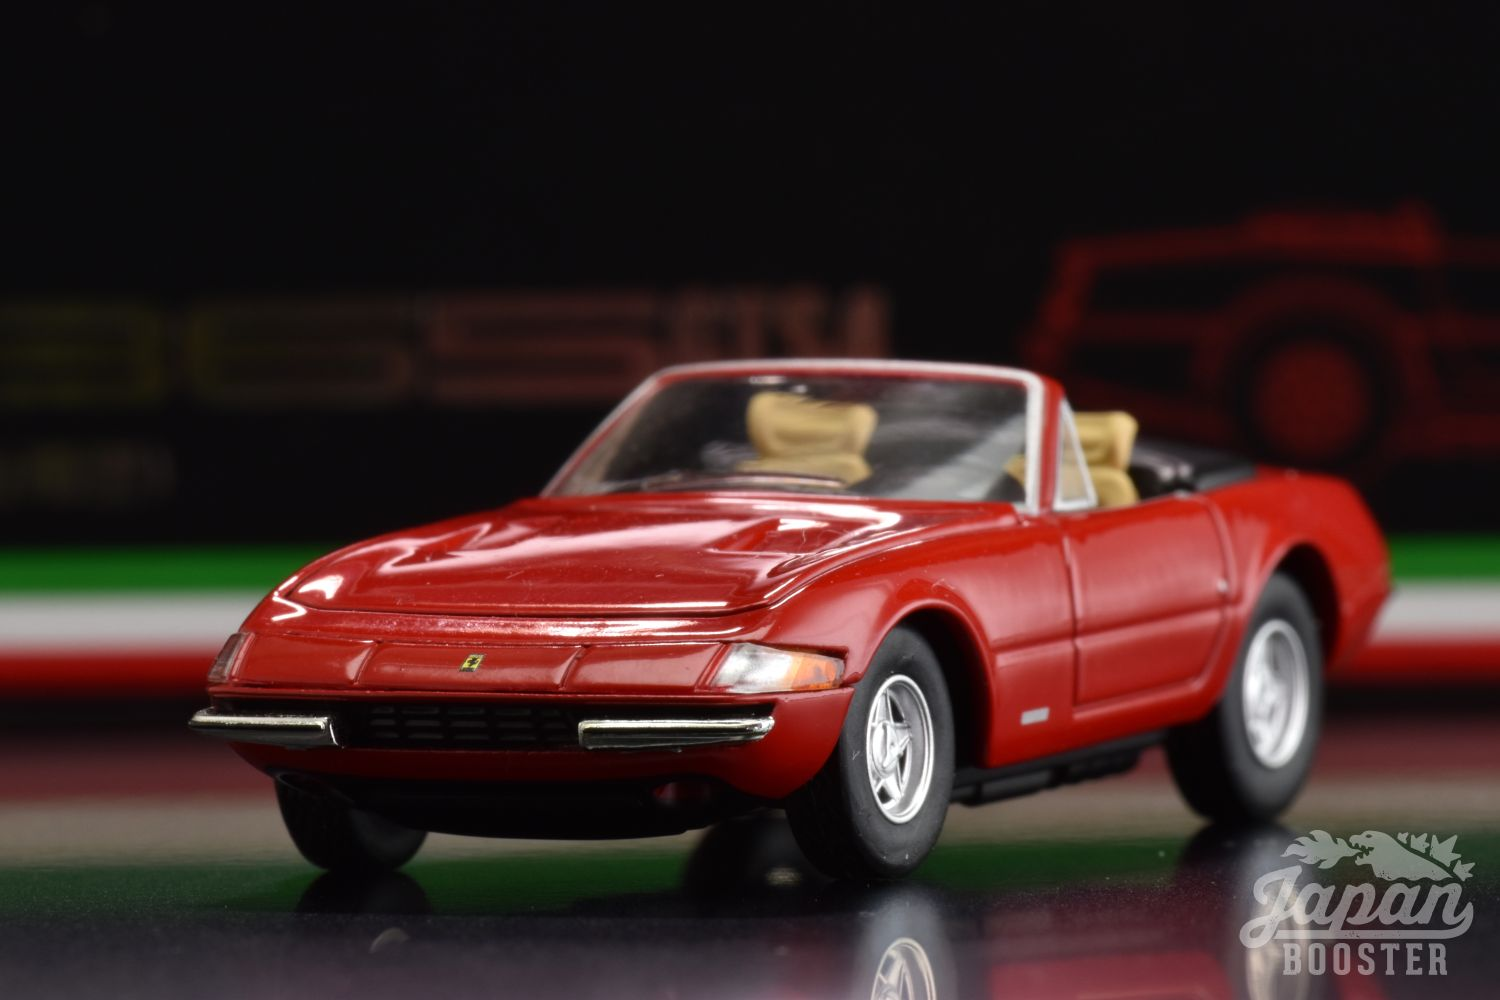 LV-FERRARI 365 GTS4 Red